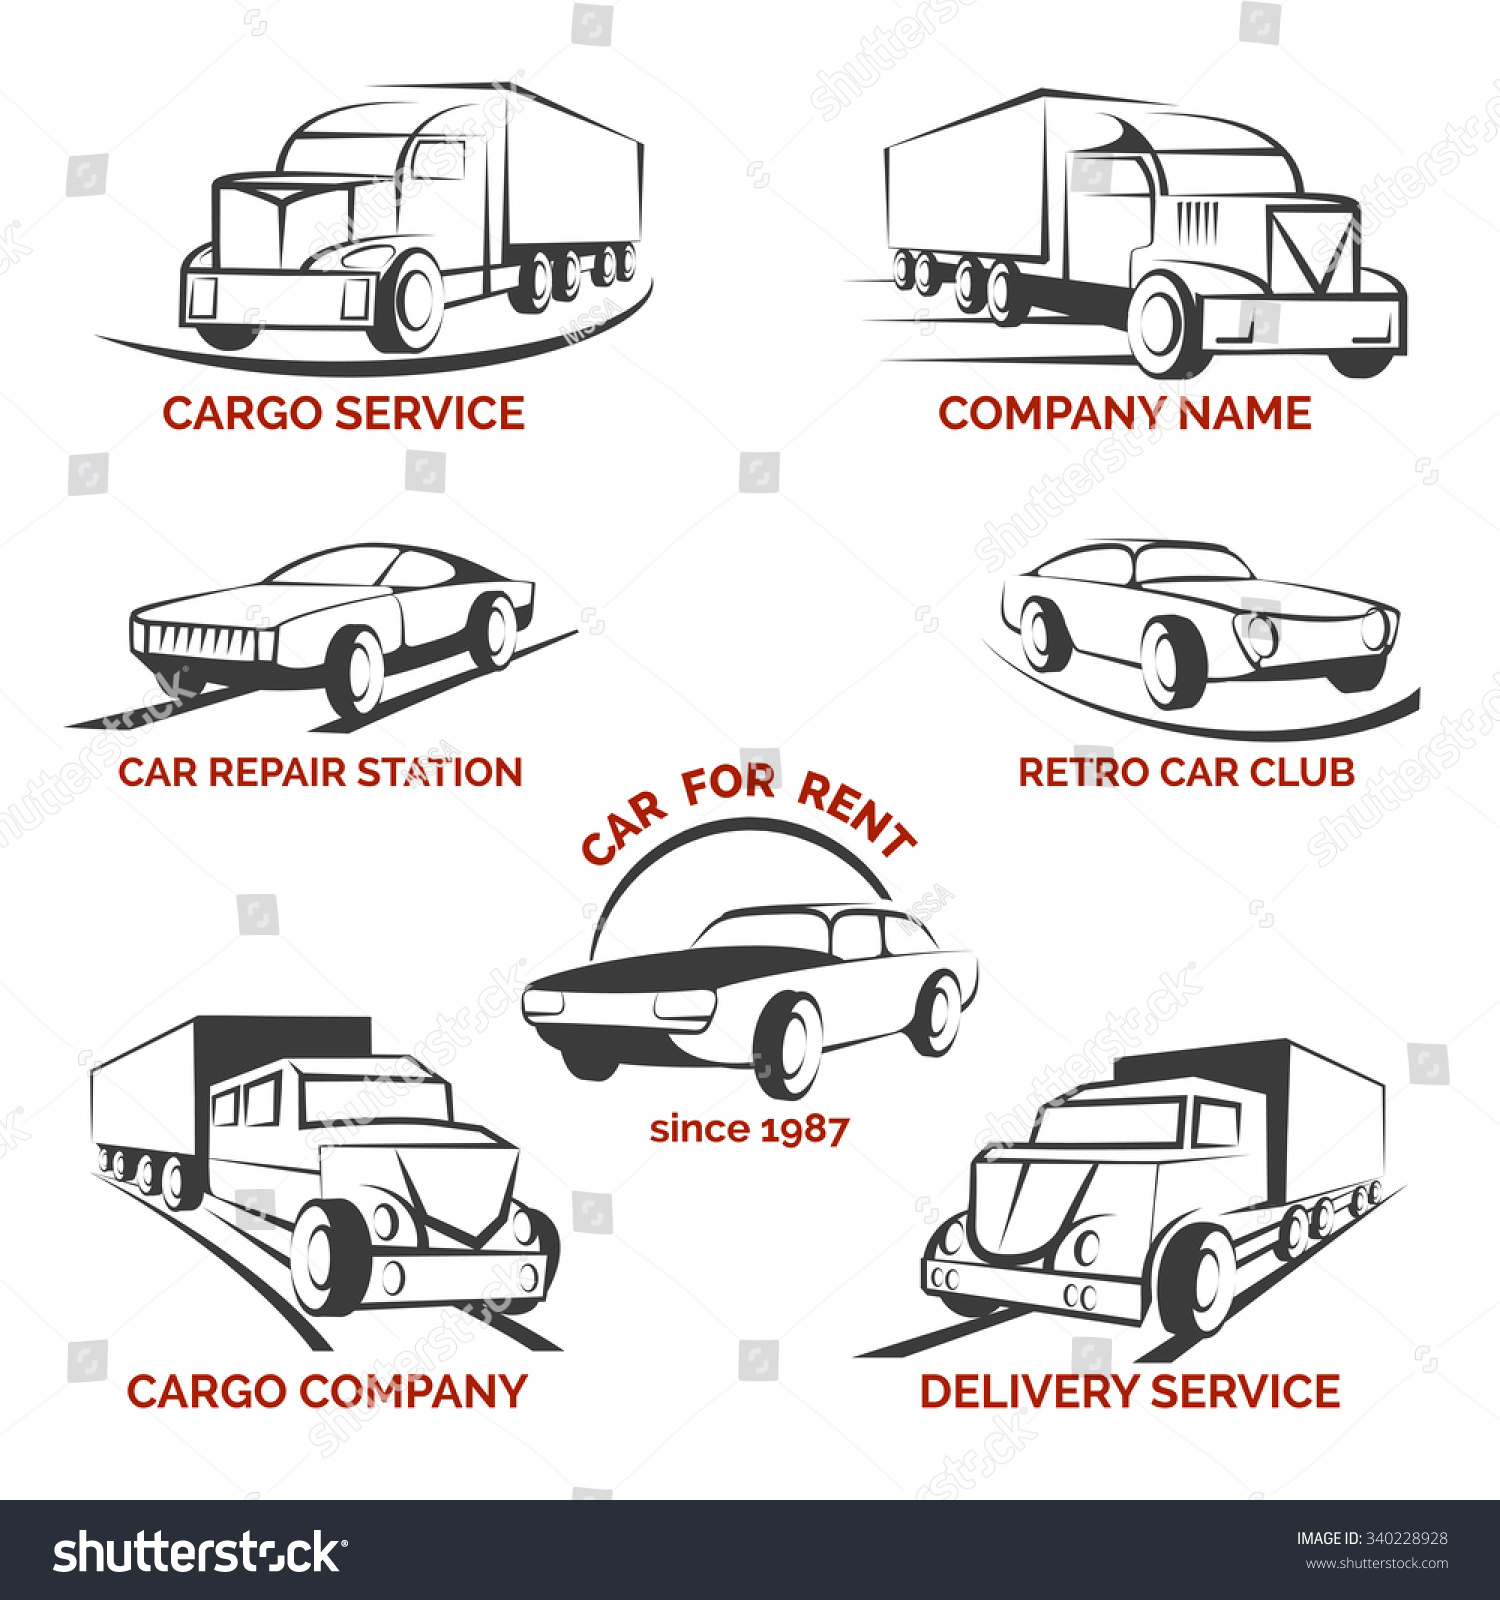 Design car club logo - Car Club Logo Vector Set Delivery And Repair Station Rent Auto Truck And Cargo